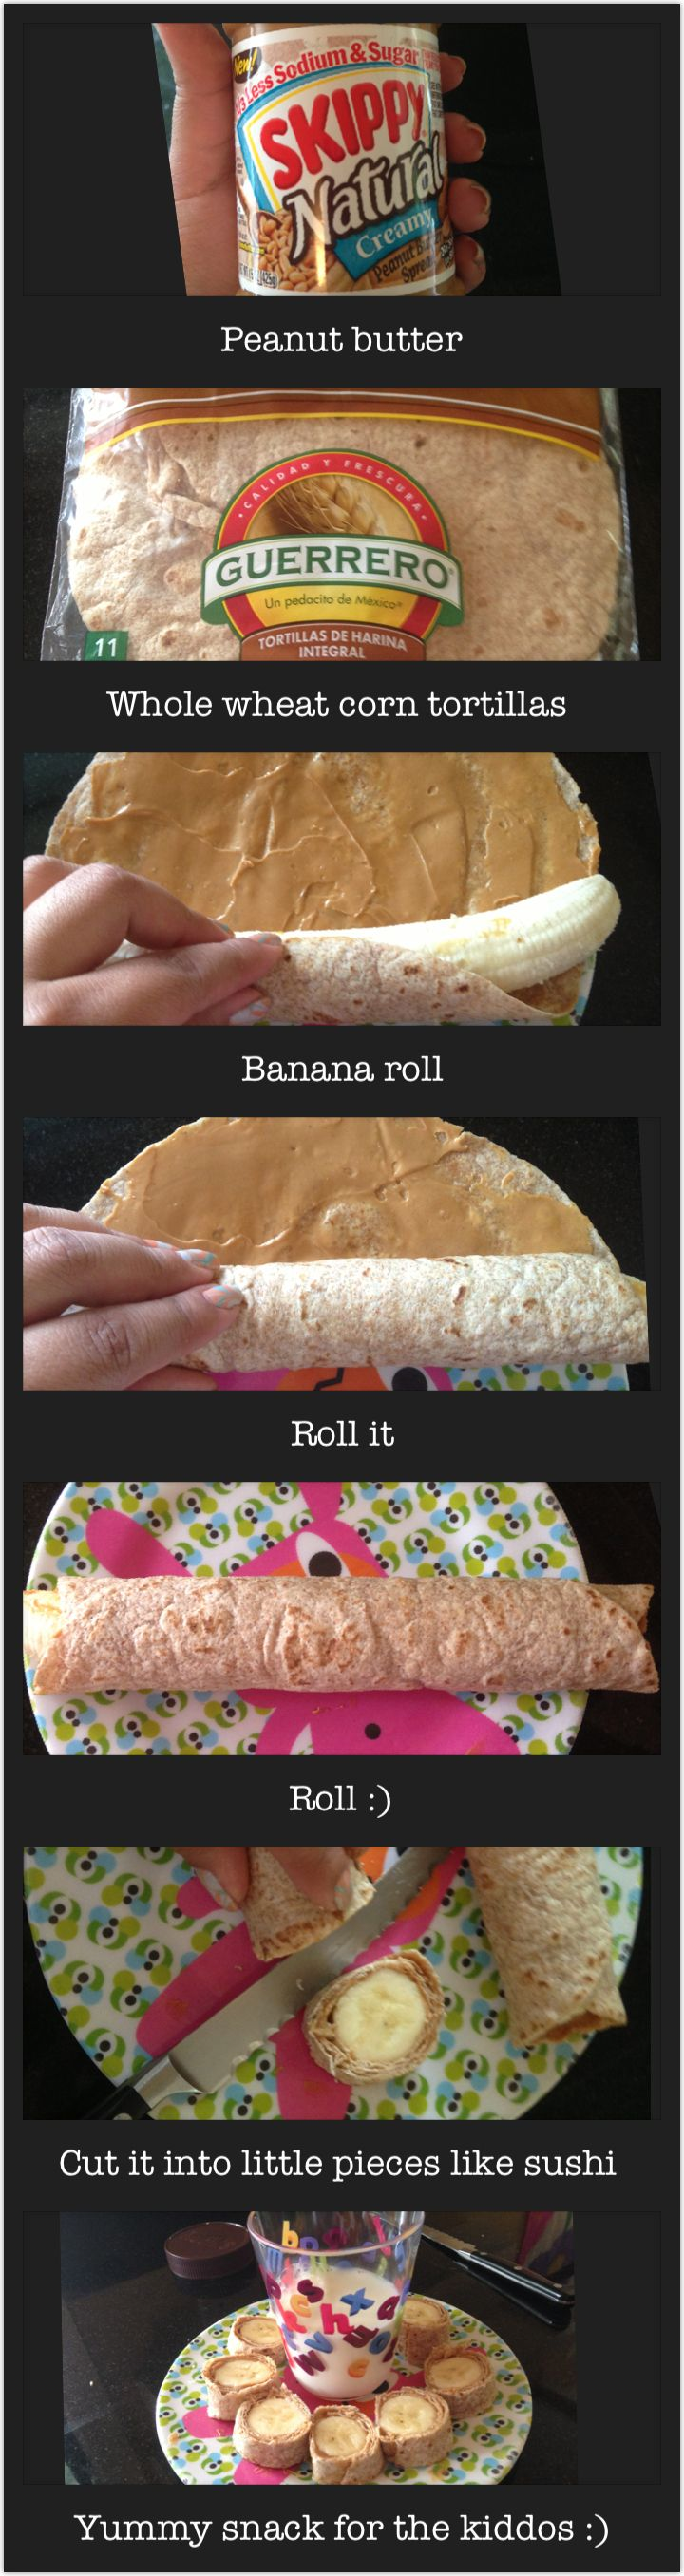 Easy and healthy snack for kids!